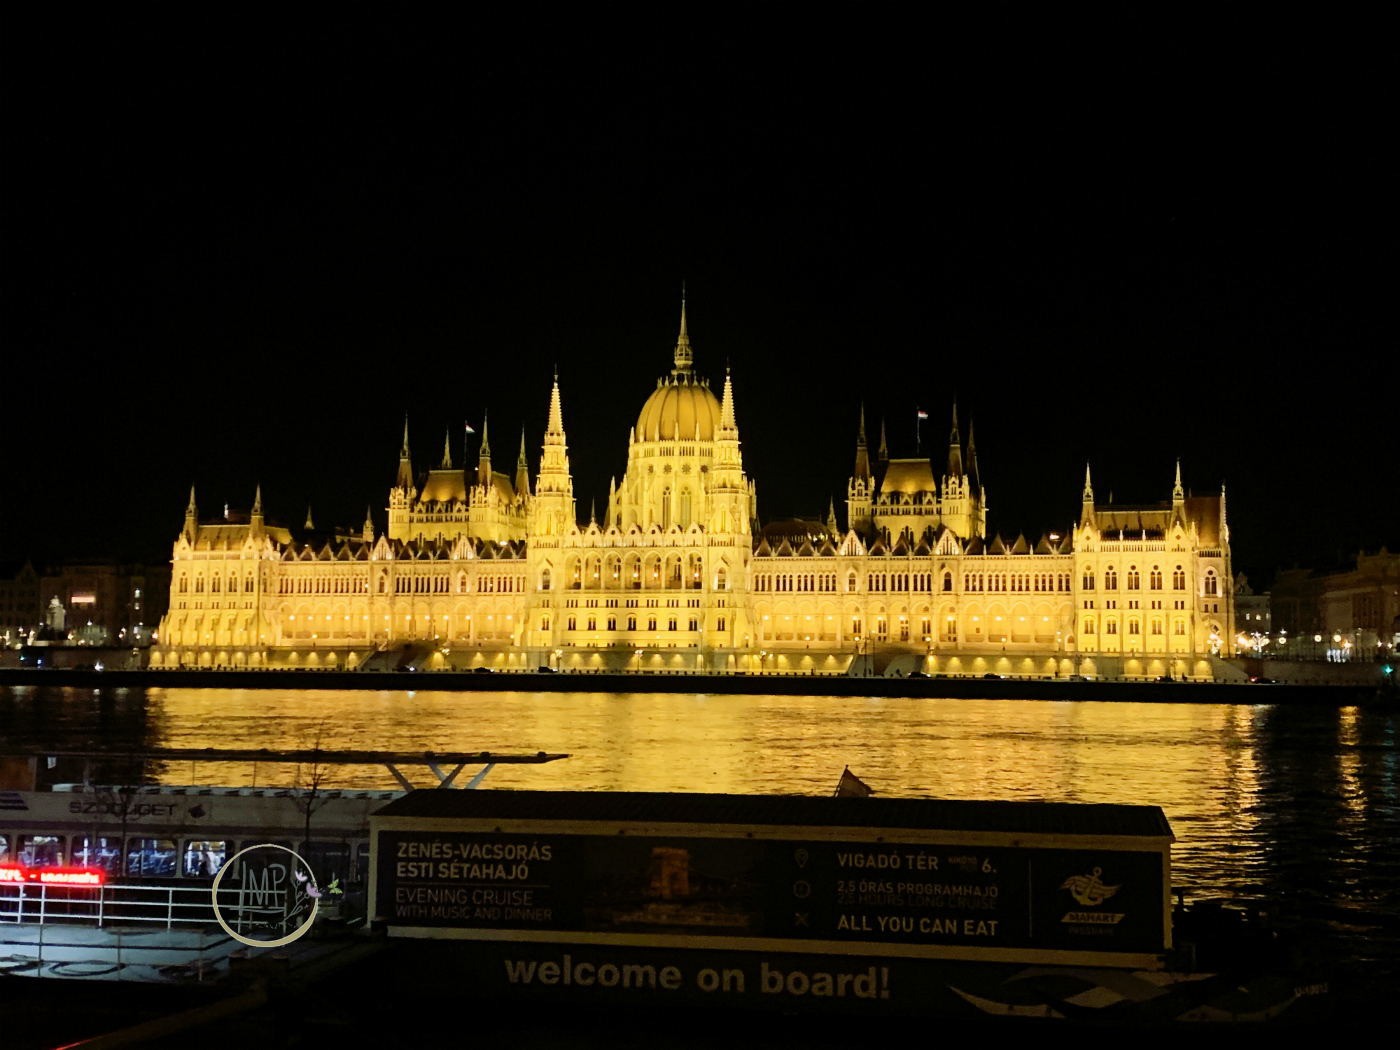 Parlamento by night